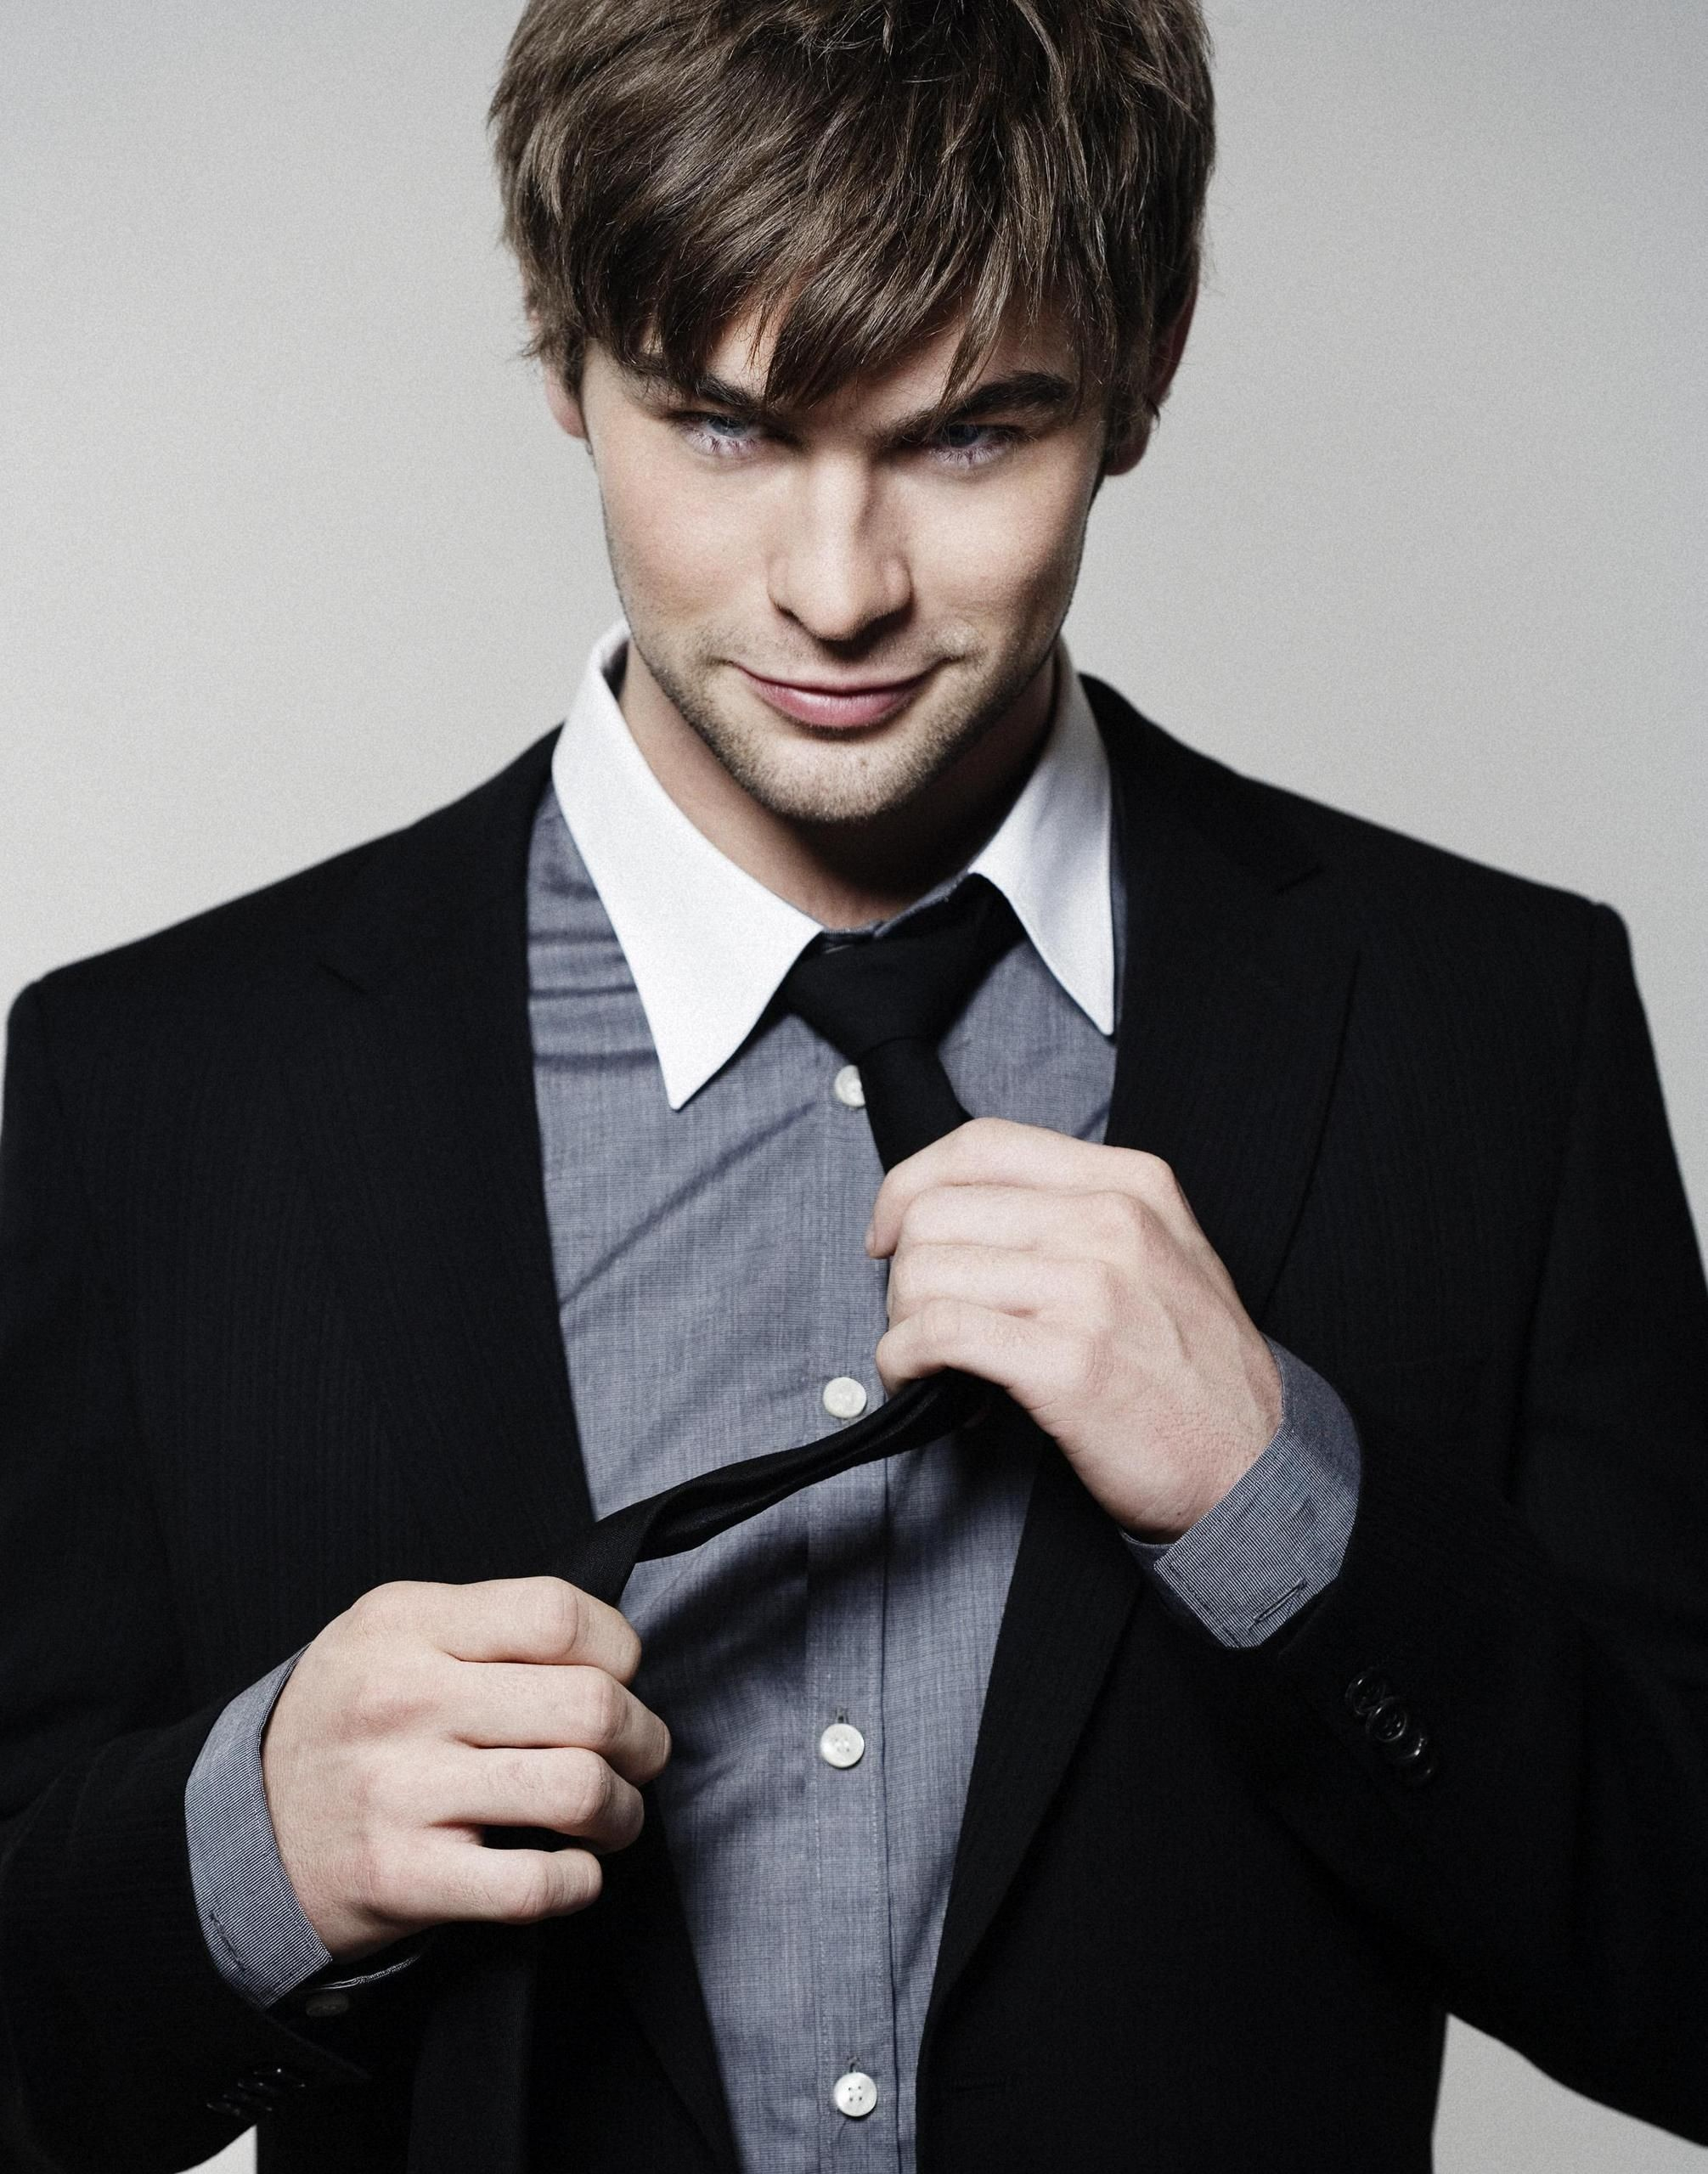 Res: 2011x2560, And of course, Chace Crawford :) I need to stop watching Gossip Girl.